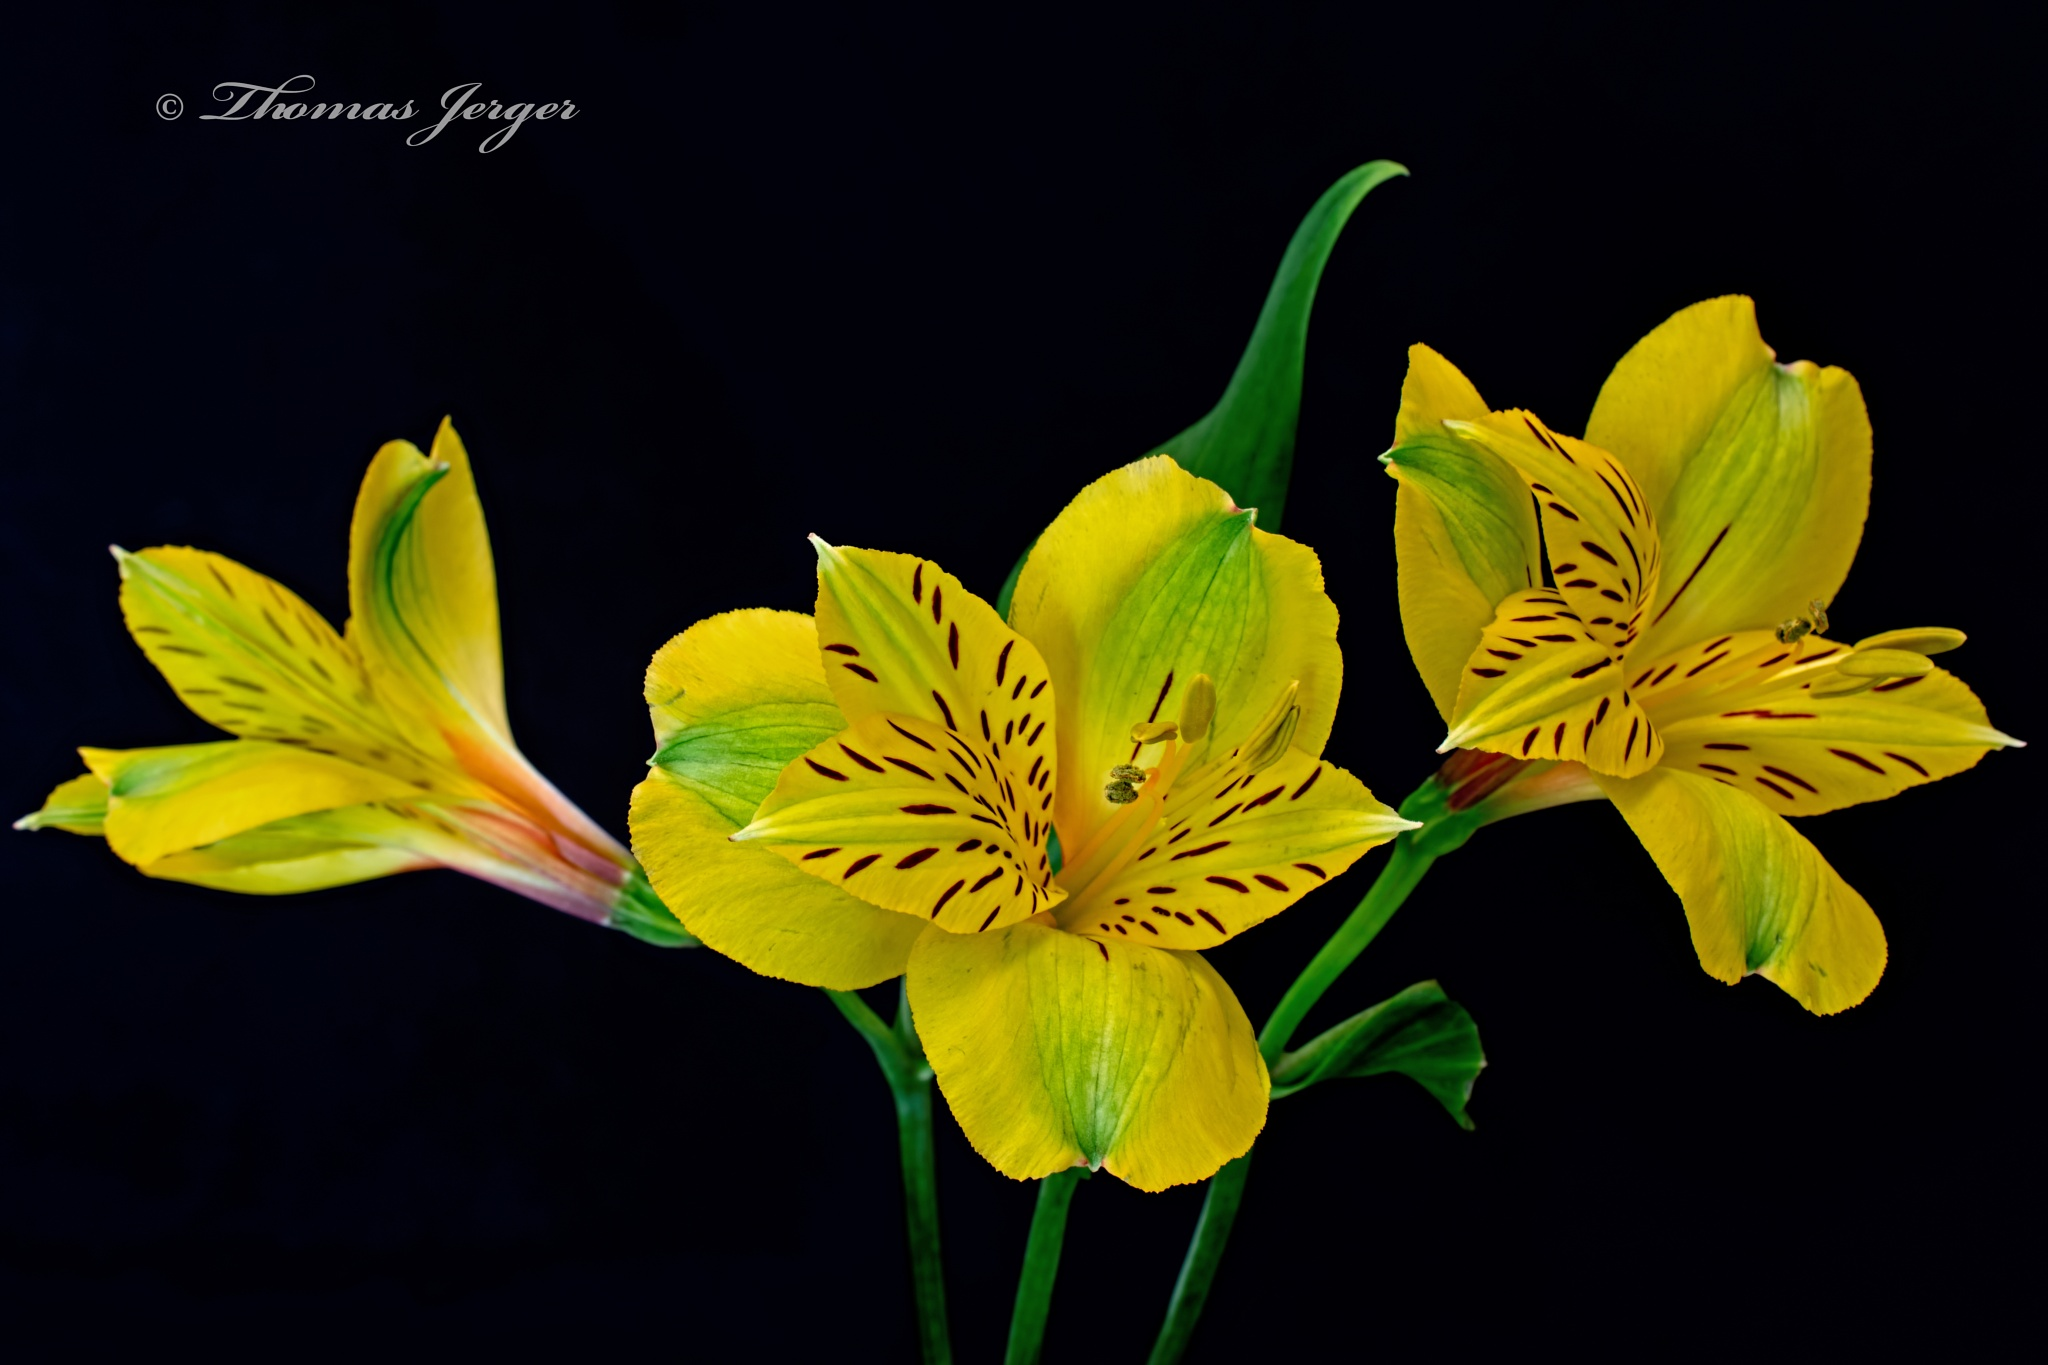 Yellow Alstroemeria Blooms 0106 by ThomasJerger